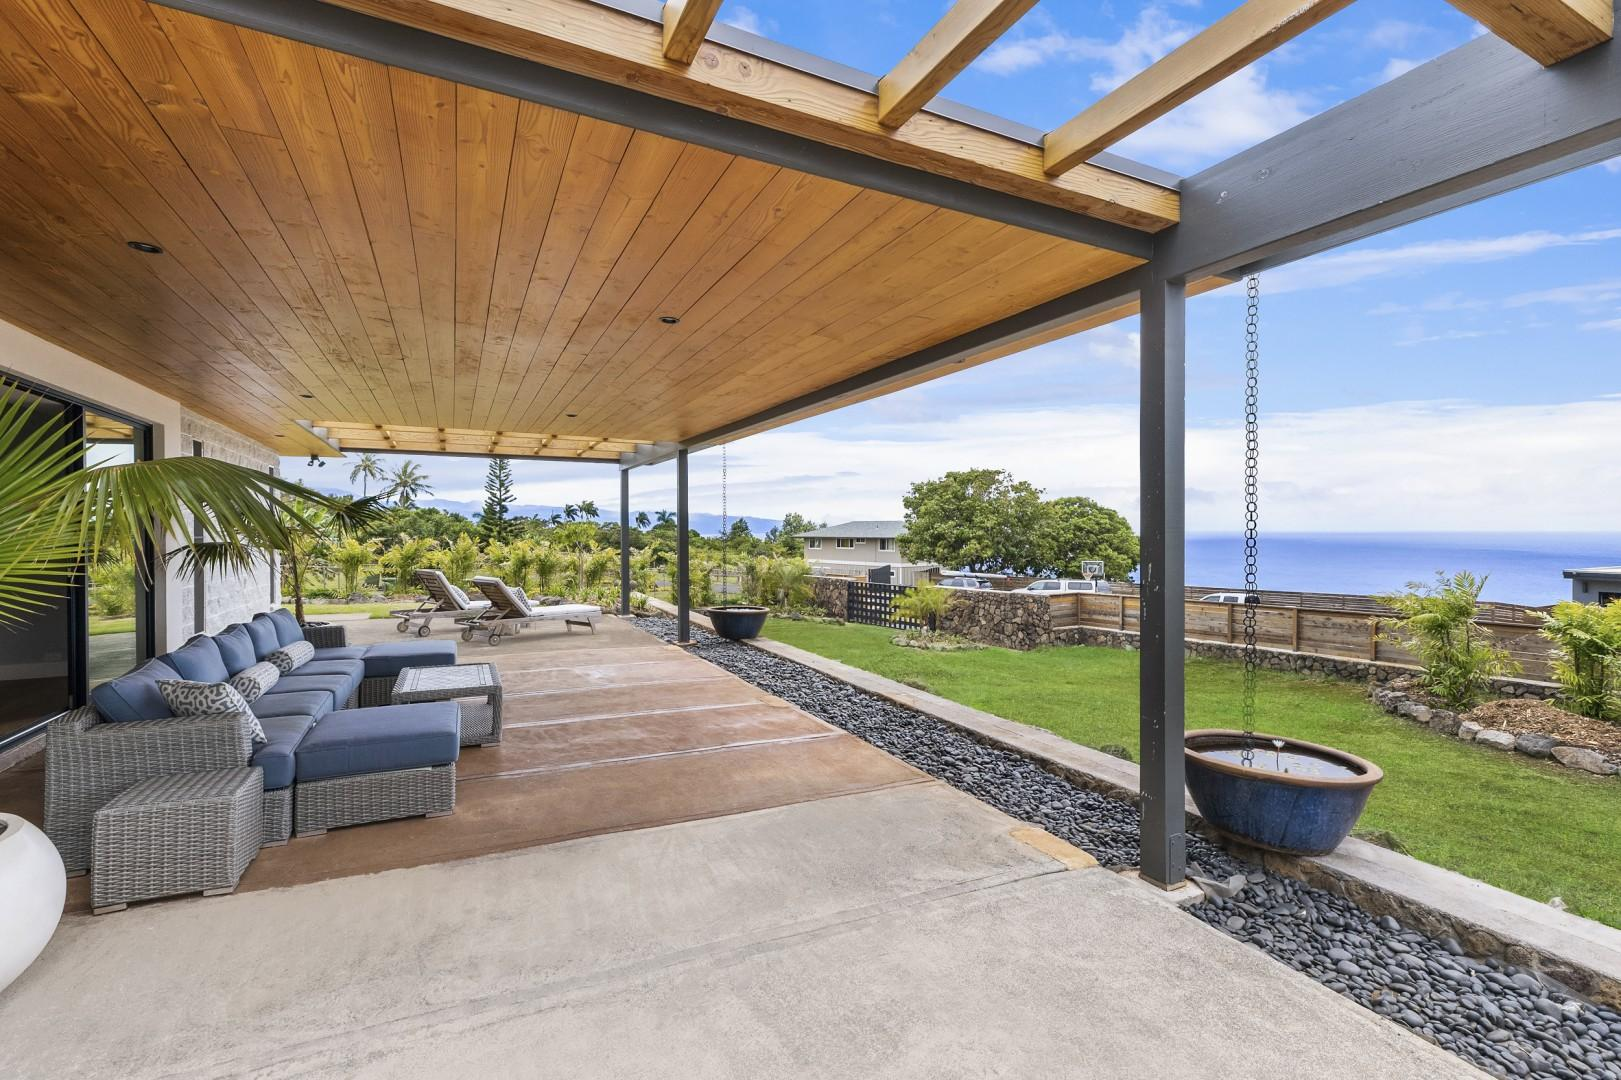 Front lanai with comfortable lounge chairs